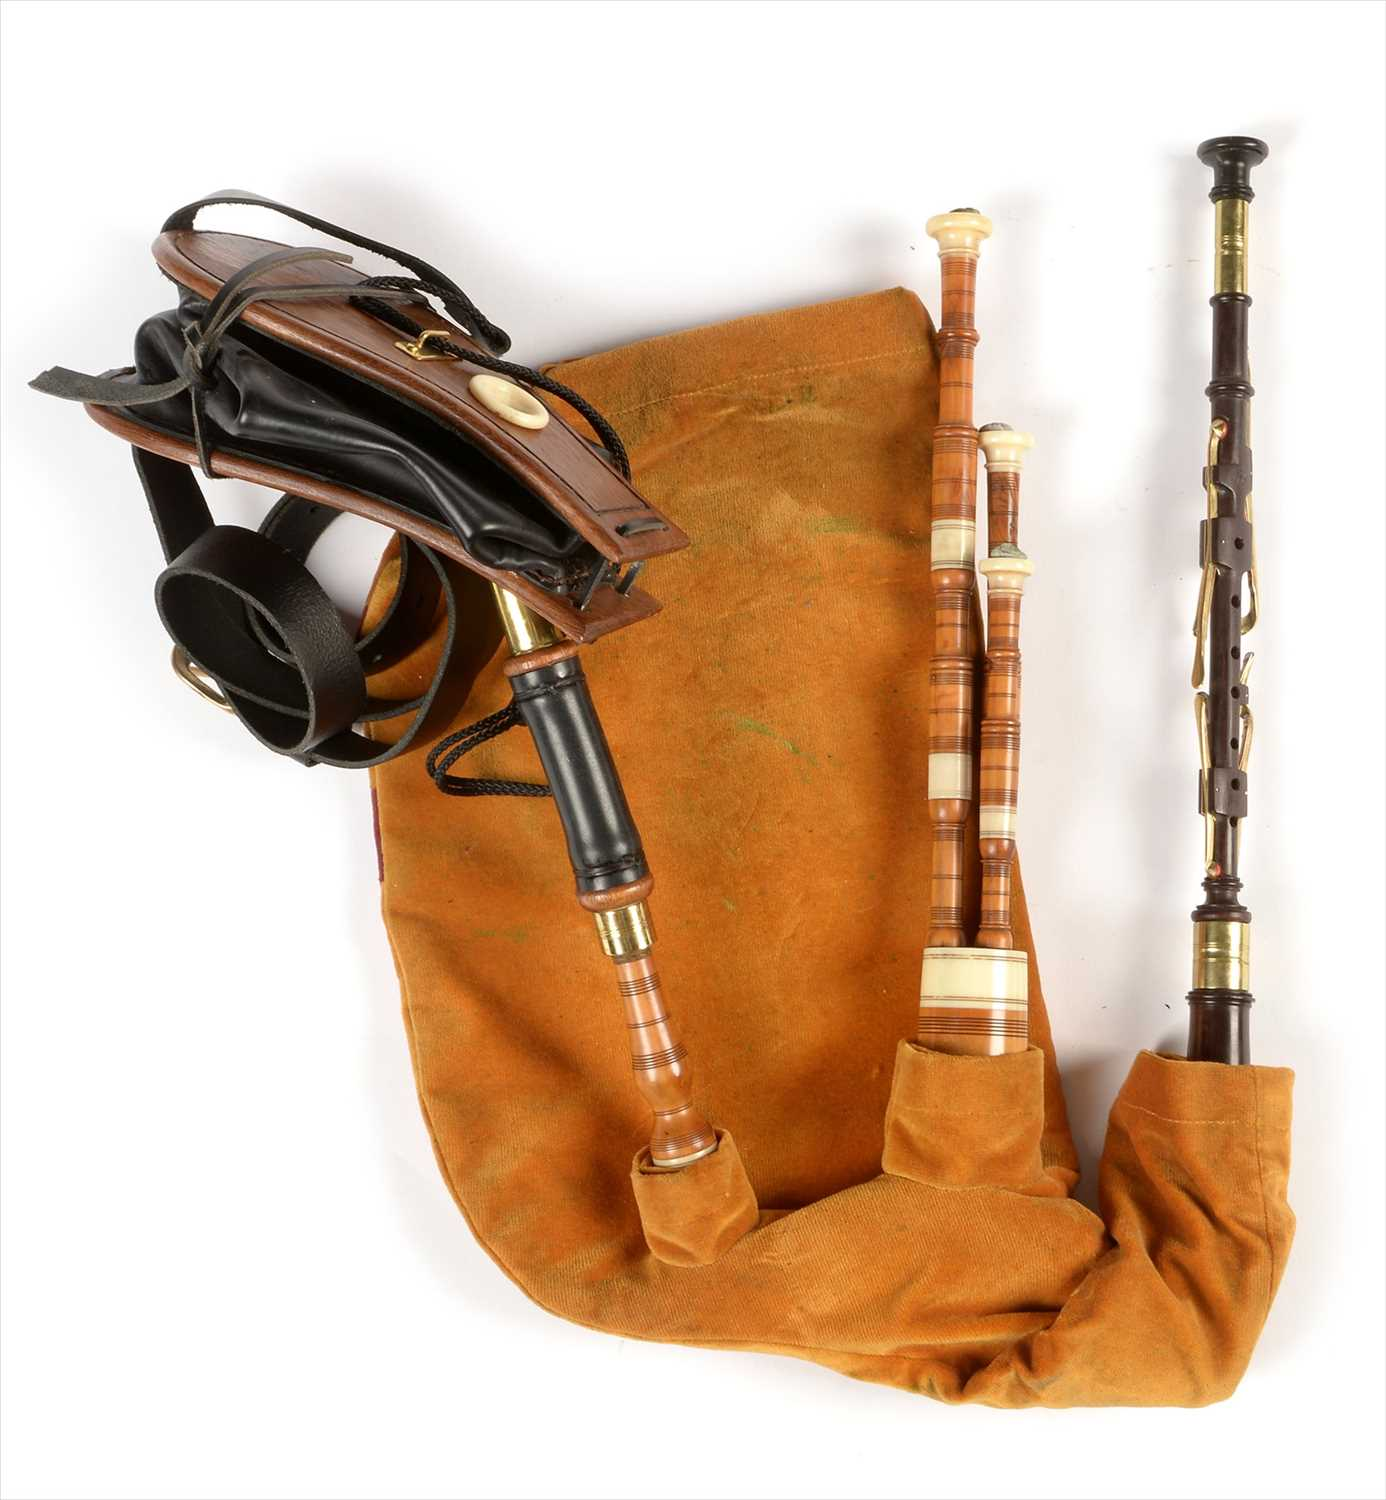 Lot 224 - Starter set of Northumbrian pipes.